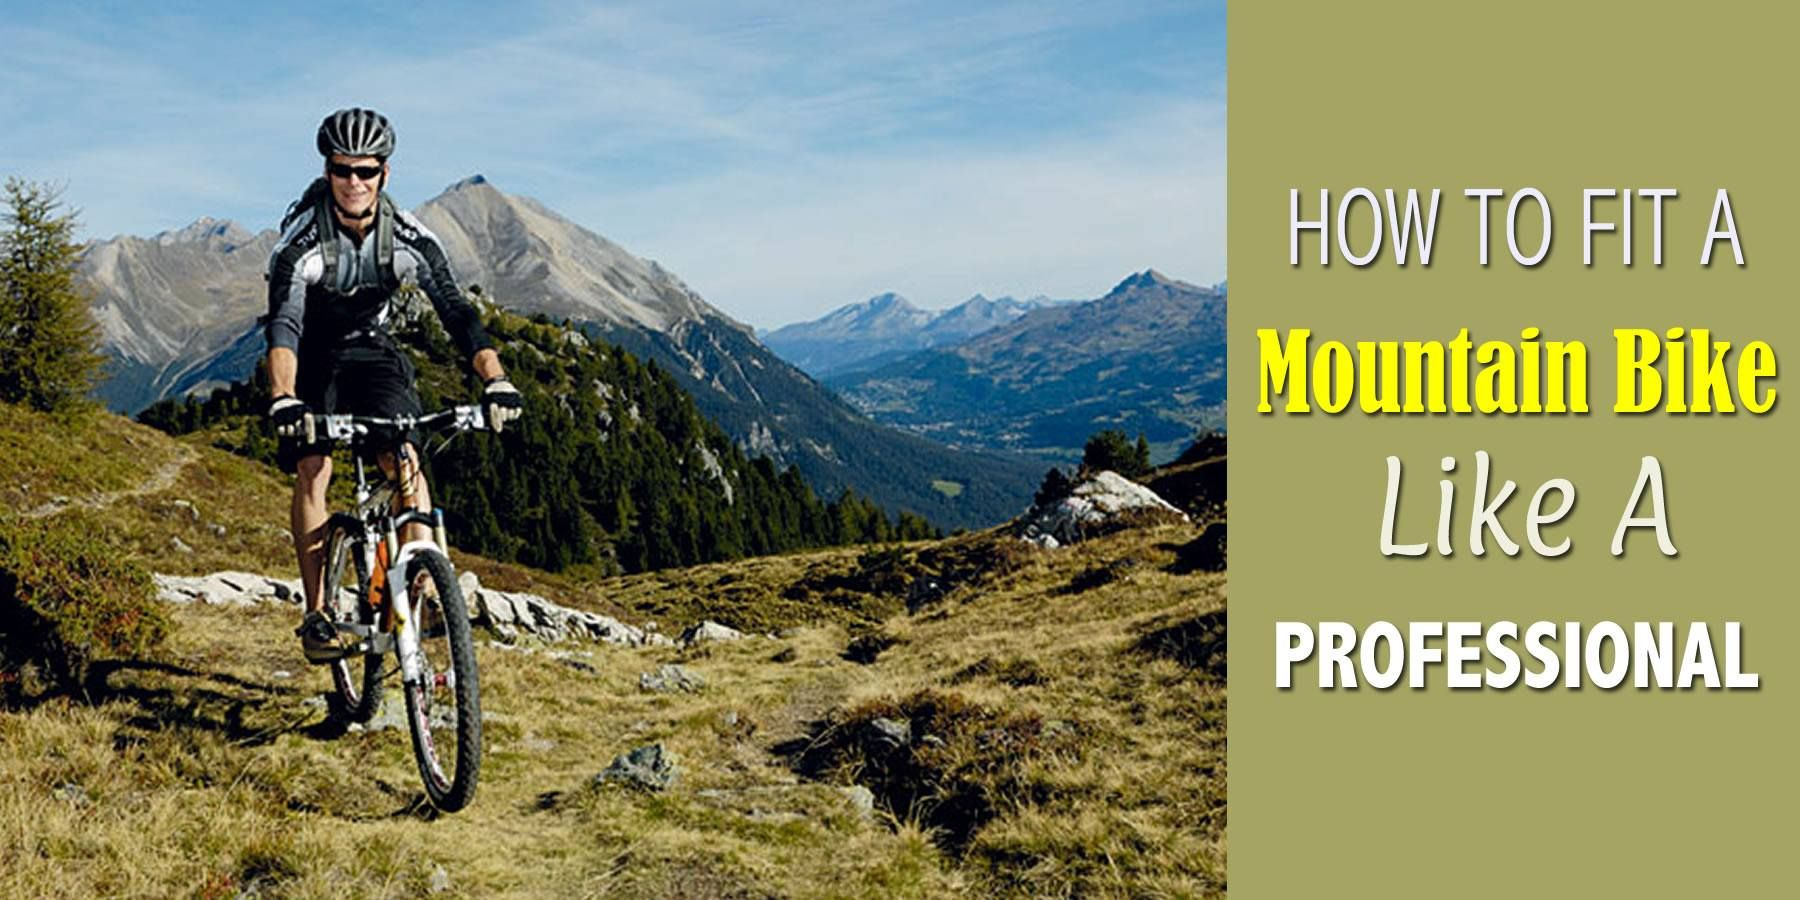 How To Fit A Chain On A Mountain Bike Step By Step Guide By